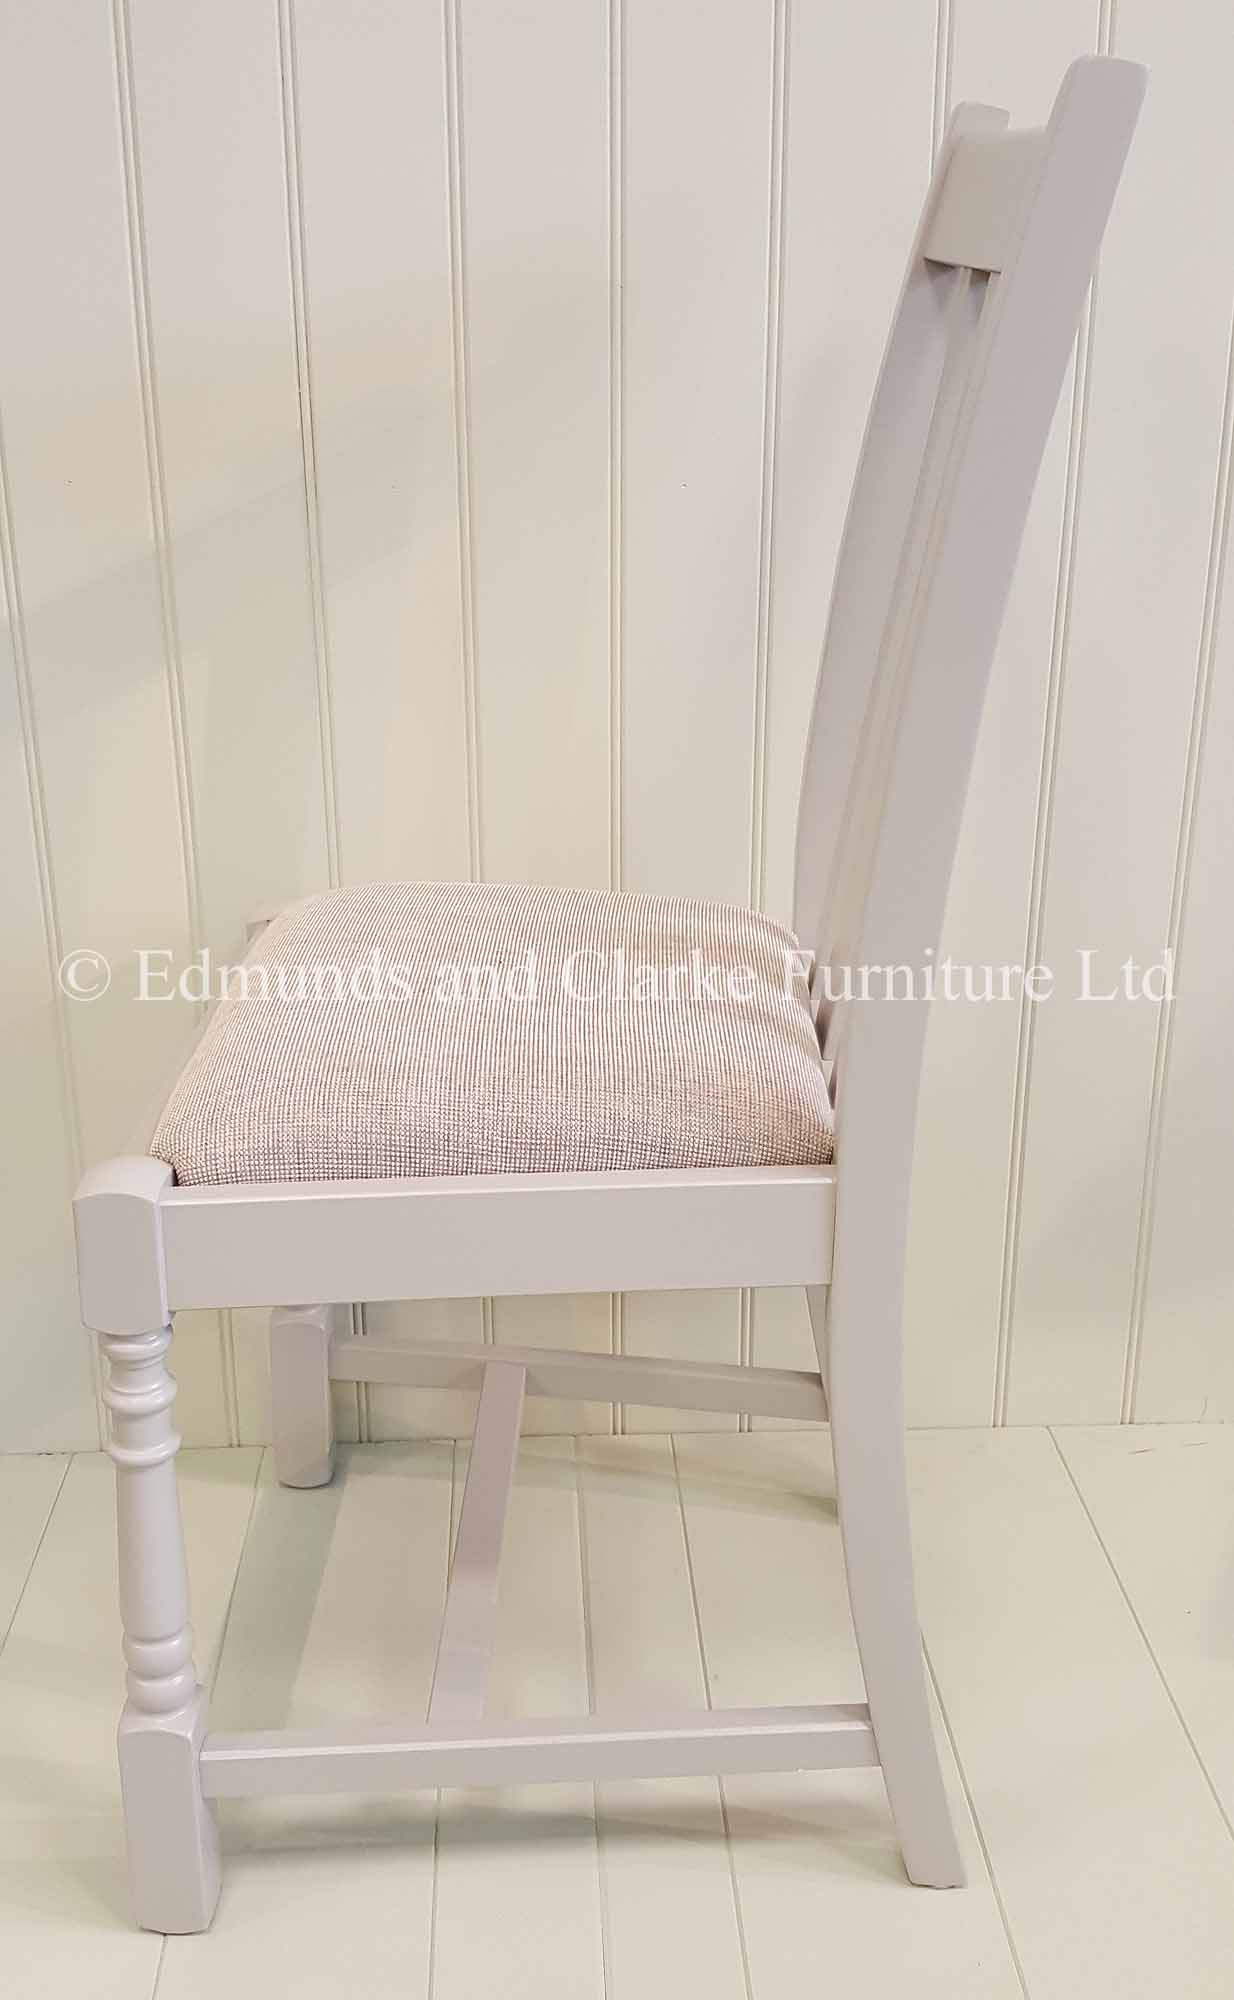 Tudor painted dining chair two front legs turned